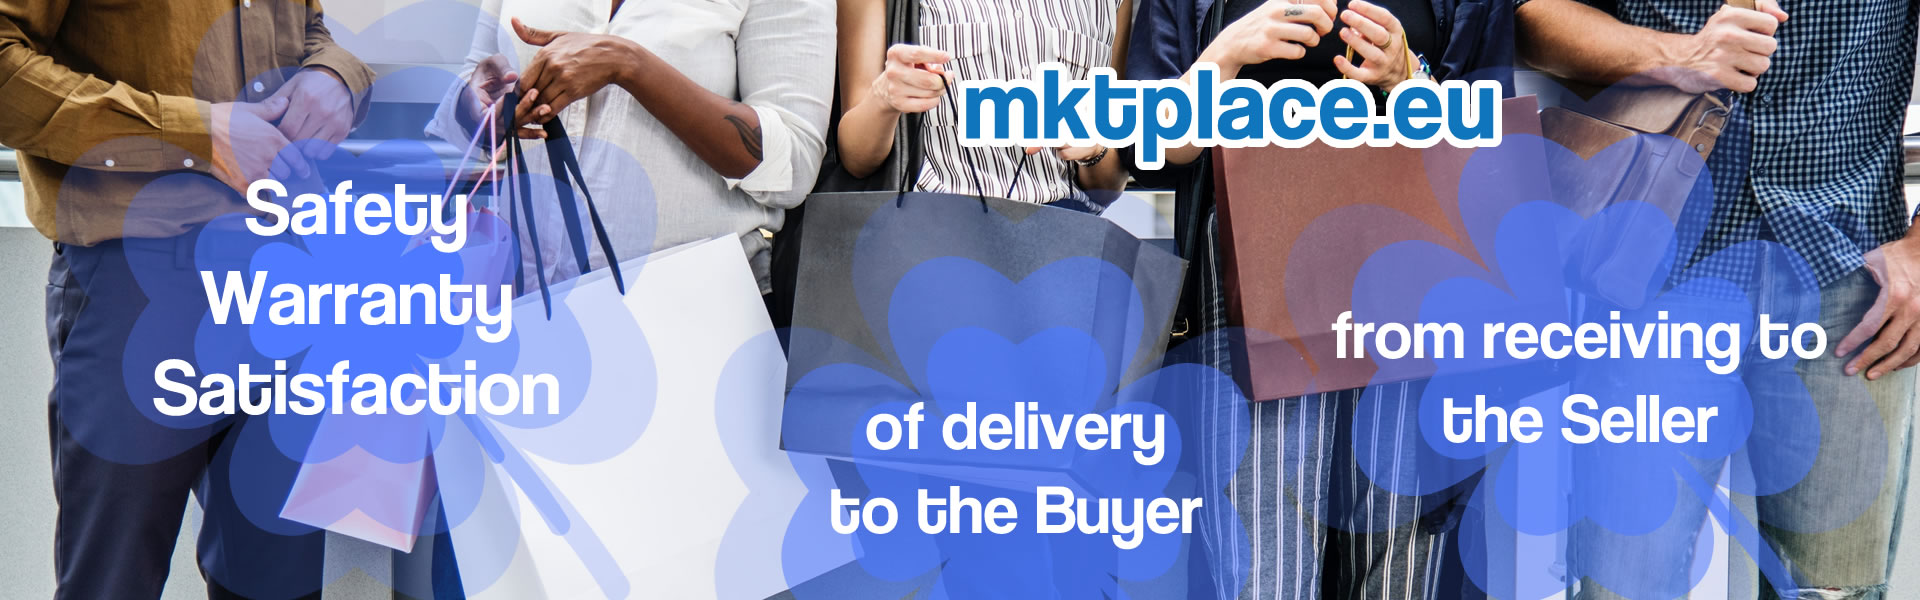 mktplace - Security, Satisfaction and Guarantee for the Buyer an